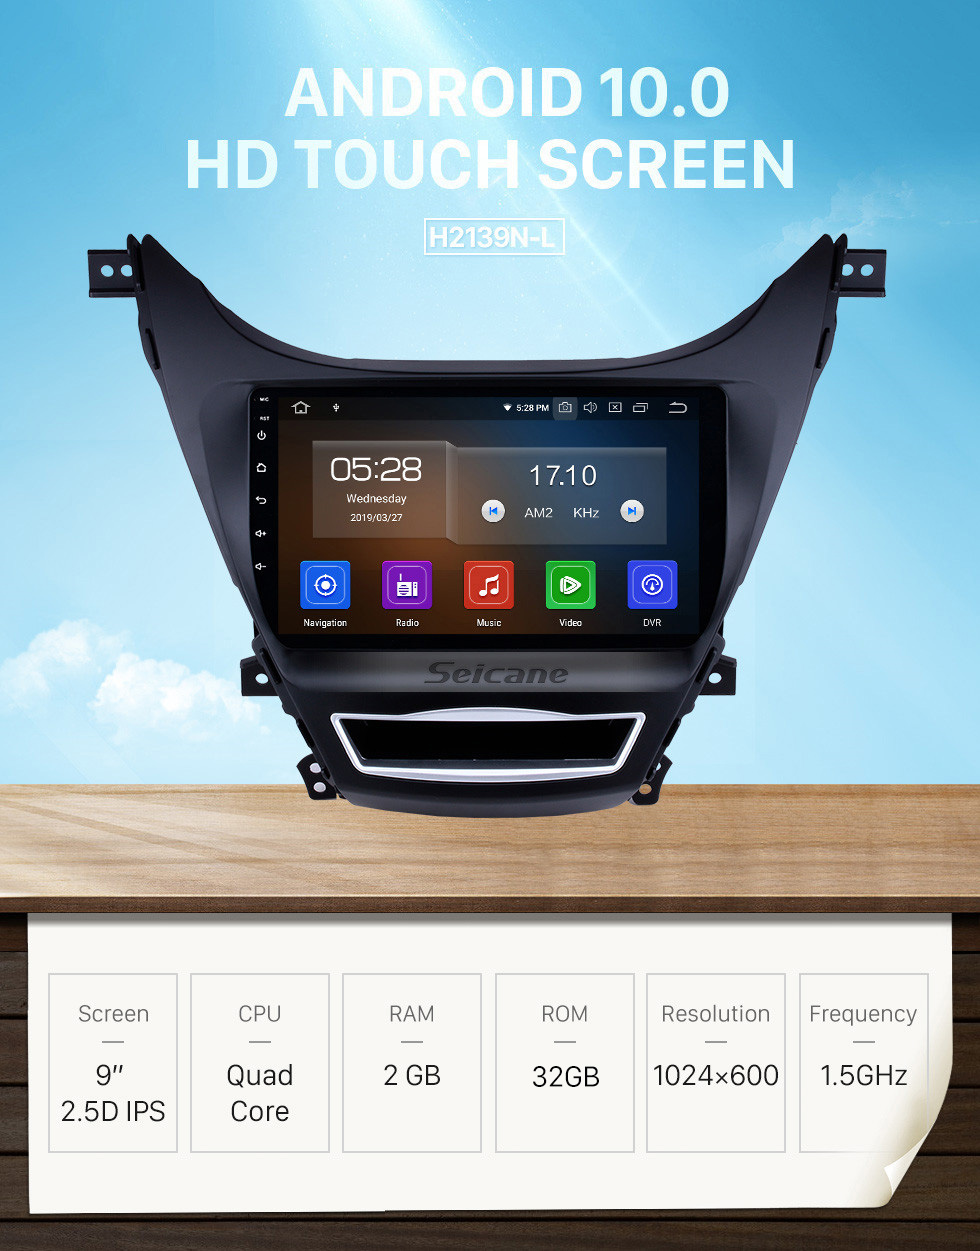 Seicane 9 inch Android 10.0 Radio GPS Car Navigation System for 2012 2013 Hyundai Elantra with Quad-core CPU Bluetooth Music 4G WiFi Mirror Link OBD2 Rearview Camera Steering Wheel Control AUX DVR 16G Flash